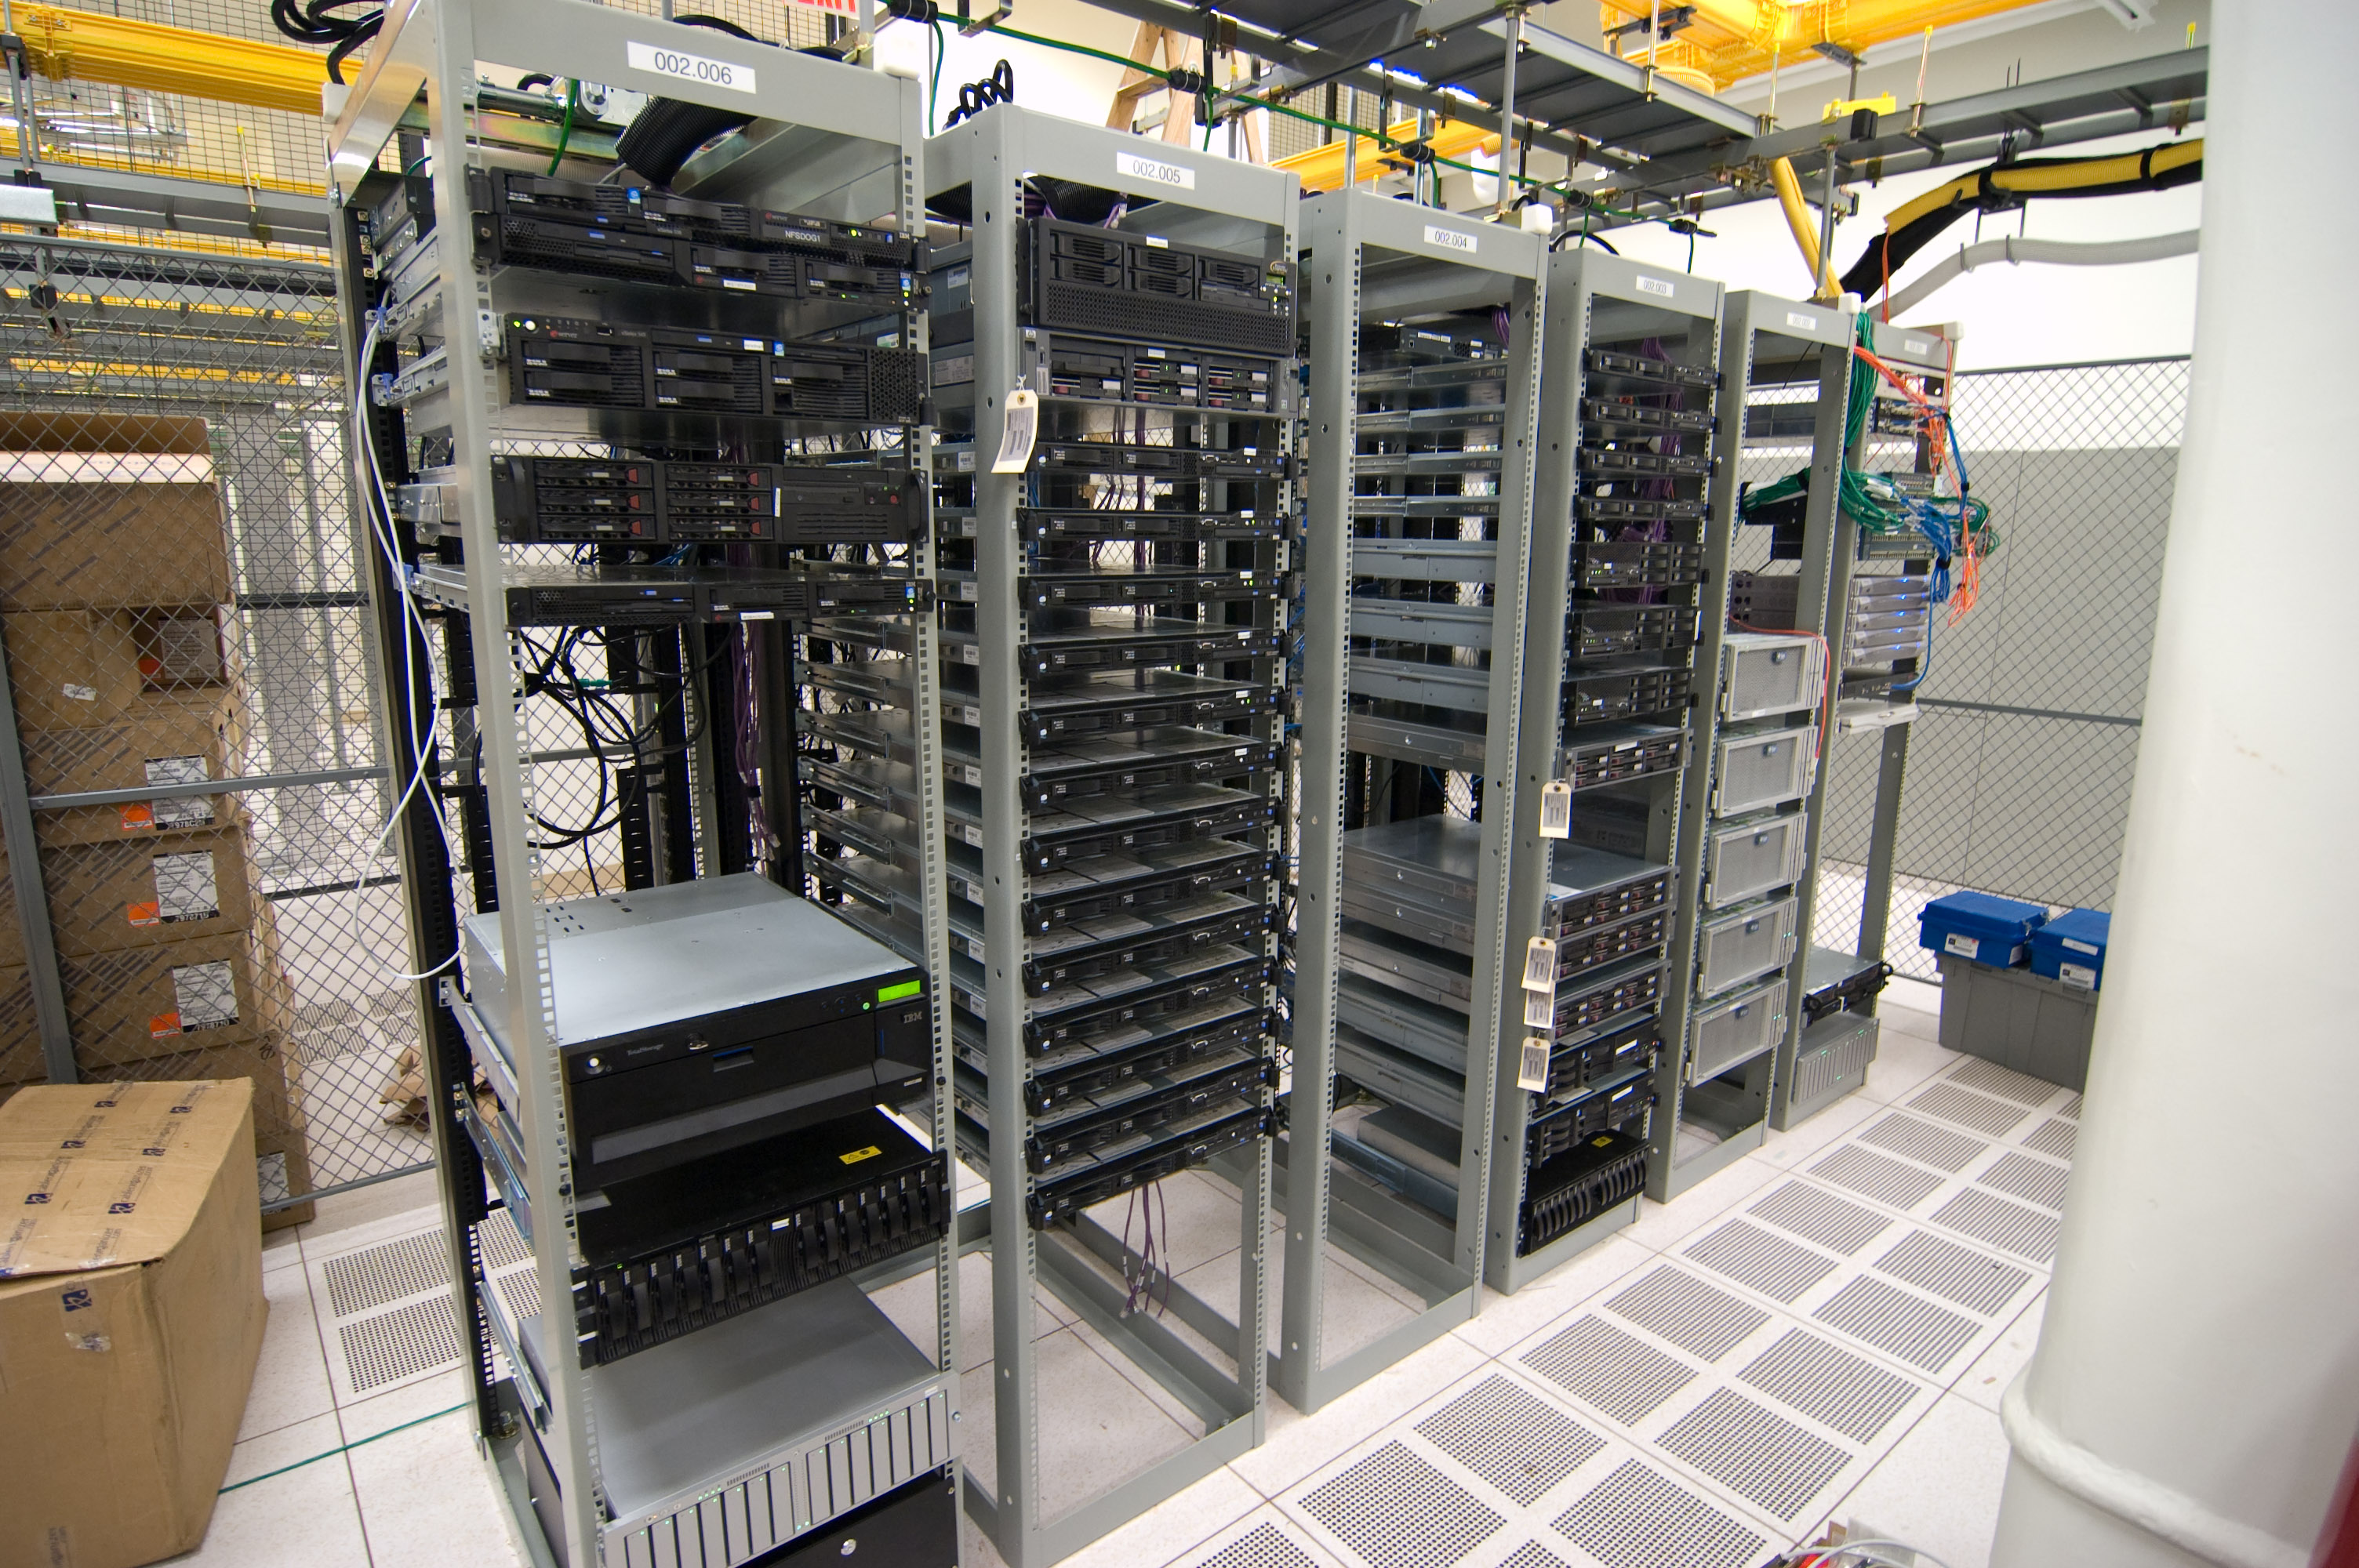 Half_filled_server_racks.jpg